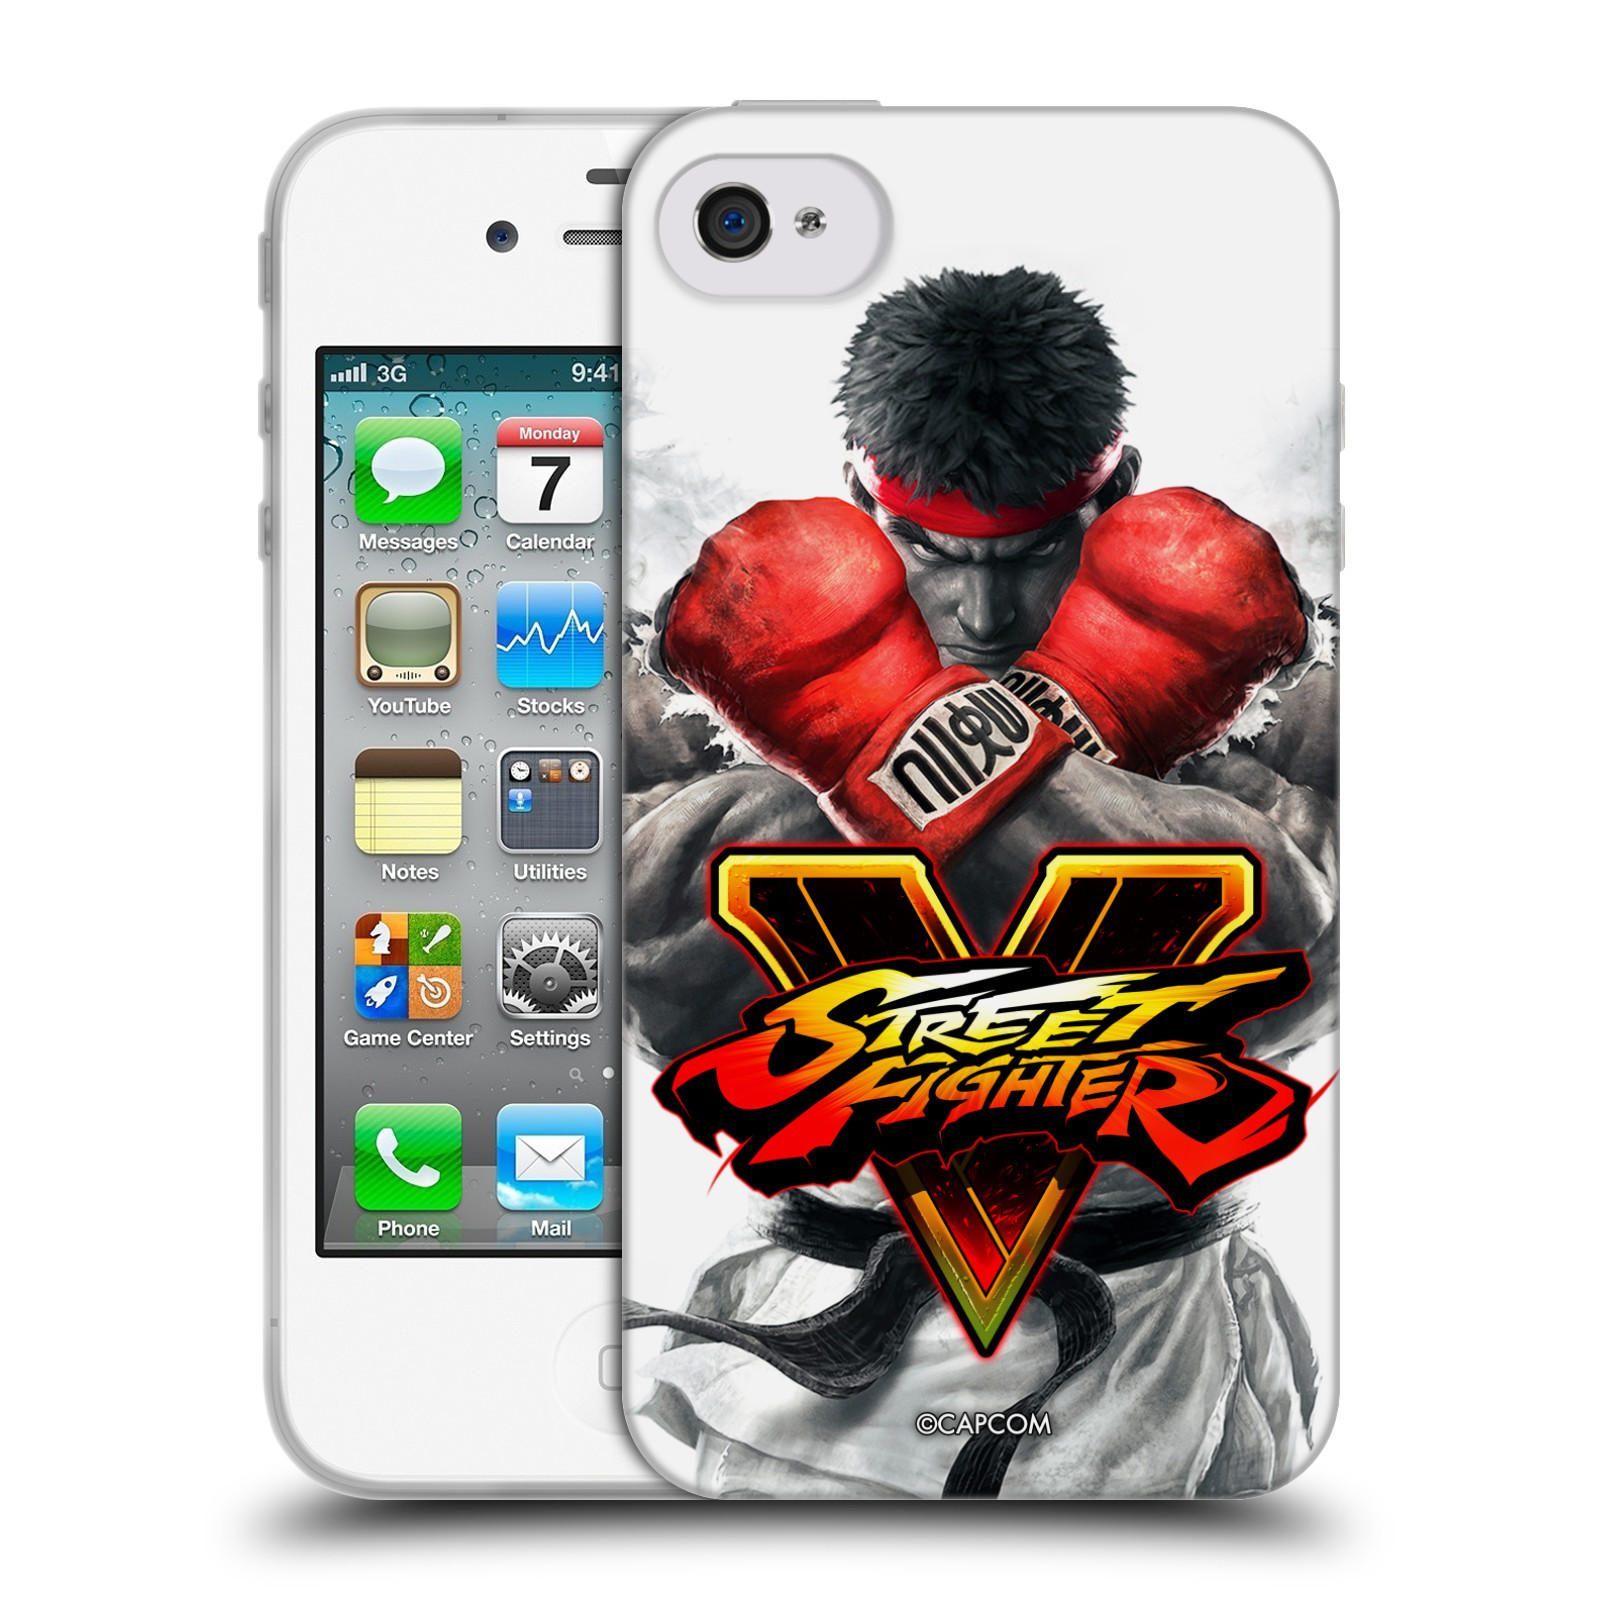 HEAD CASE silikonový obal na mobil Apple Iphone 4/4S oficiální kryt STREET FIGHTER Boxer Ryu